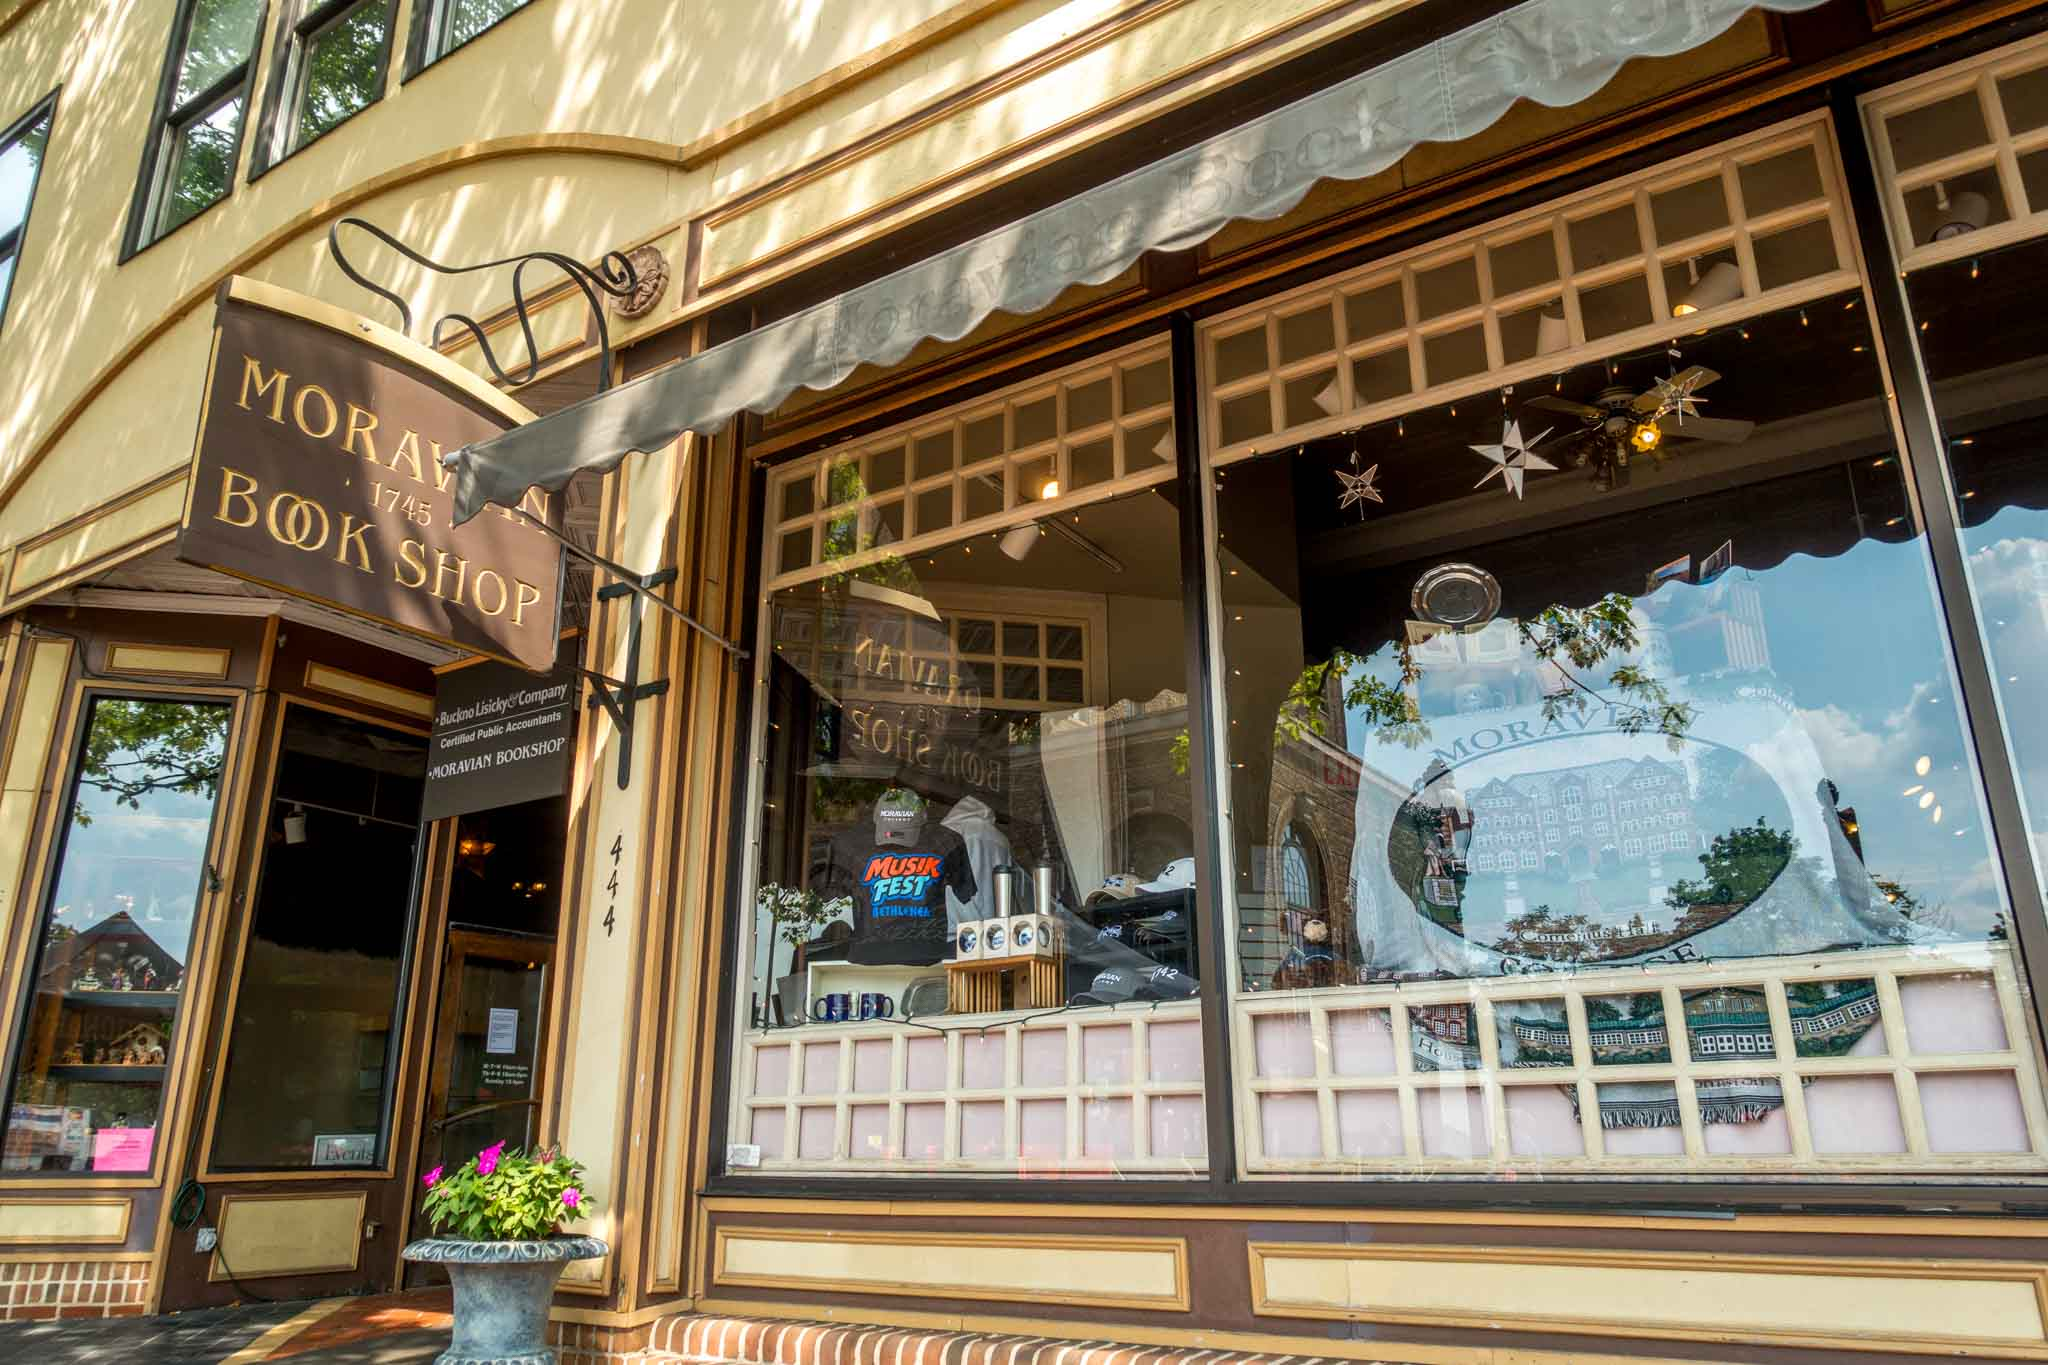 Bethlehem's Moravian Book Shop is the second oldest bookstore in the world